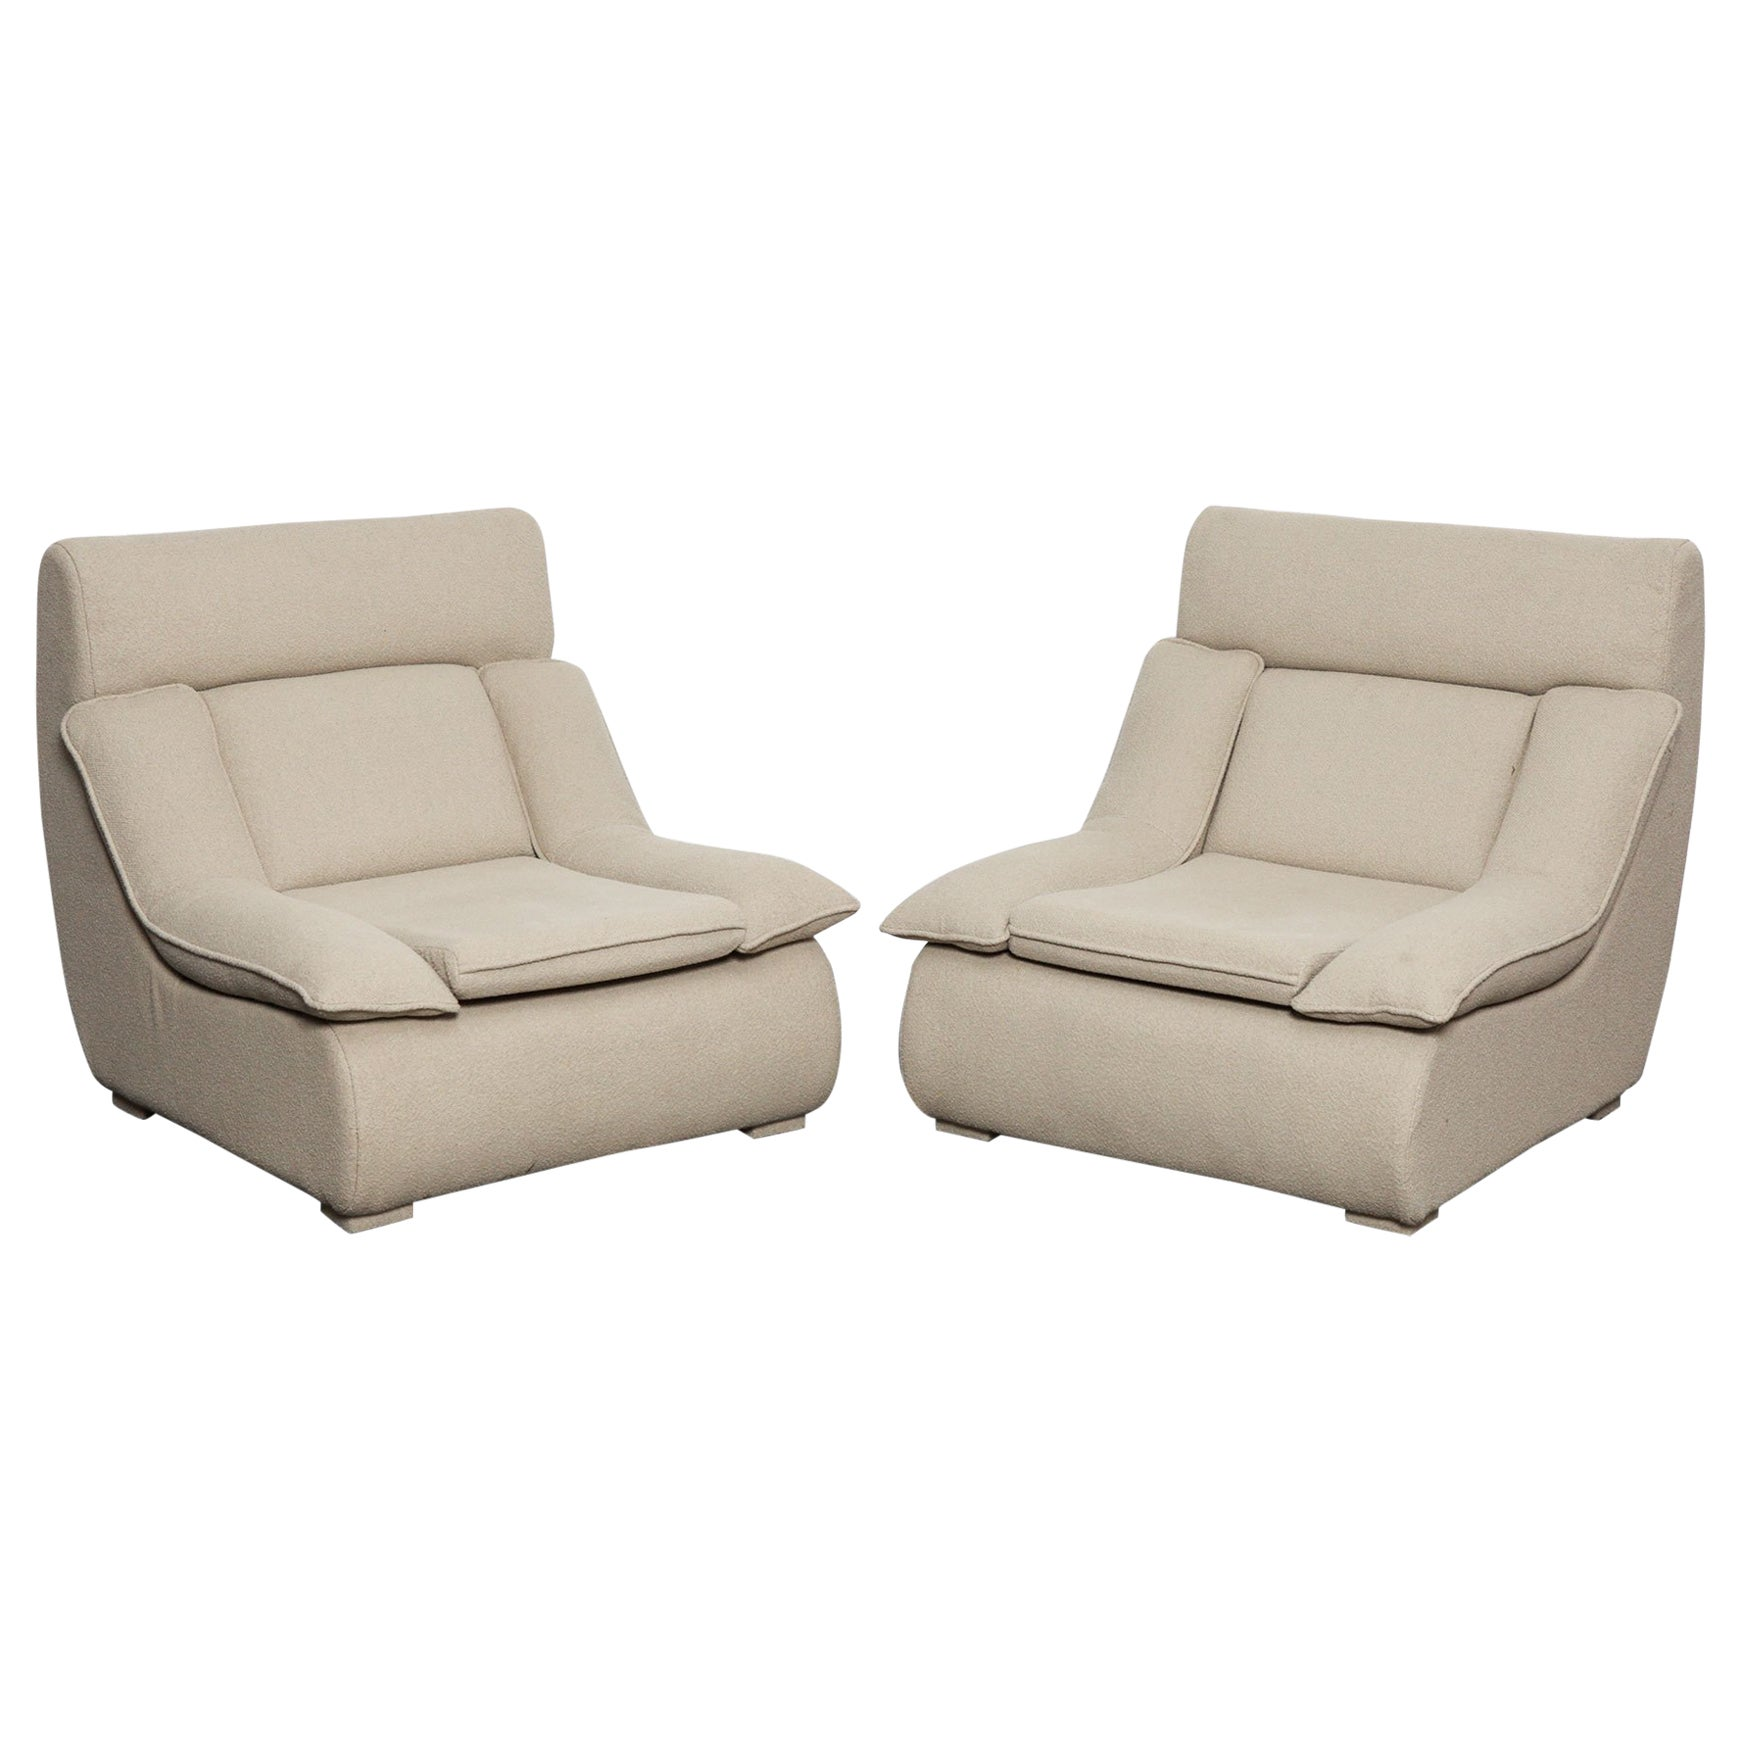 Plush Chairs Futuristic Pair Of Plush Upholstered Brazilian Midcentury Lounge Chairs